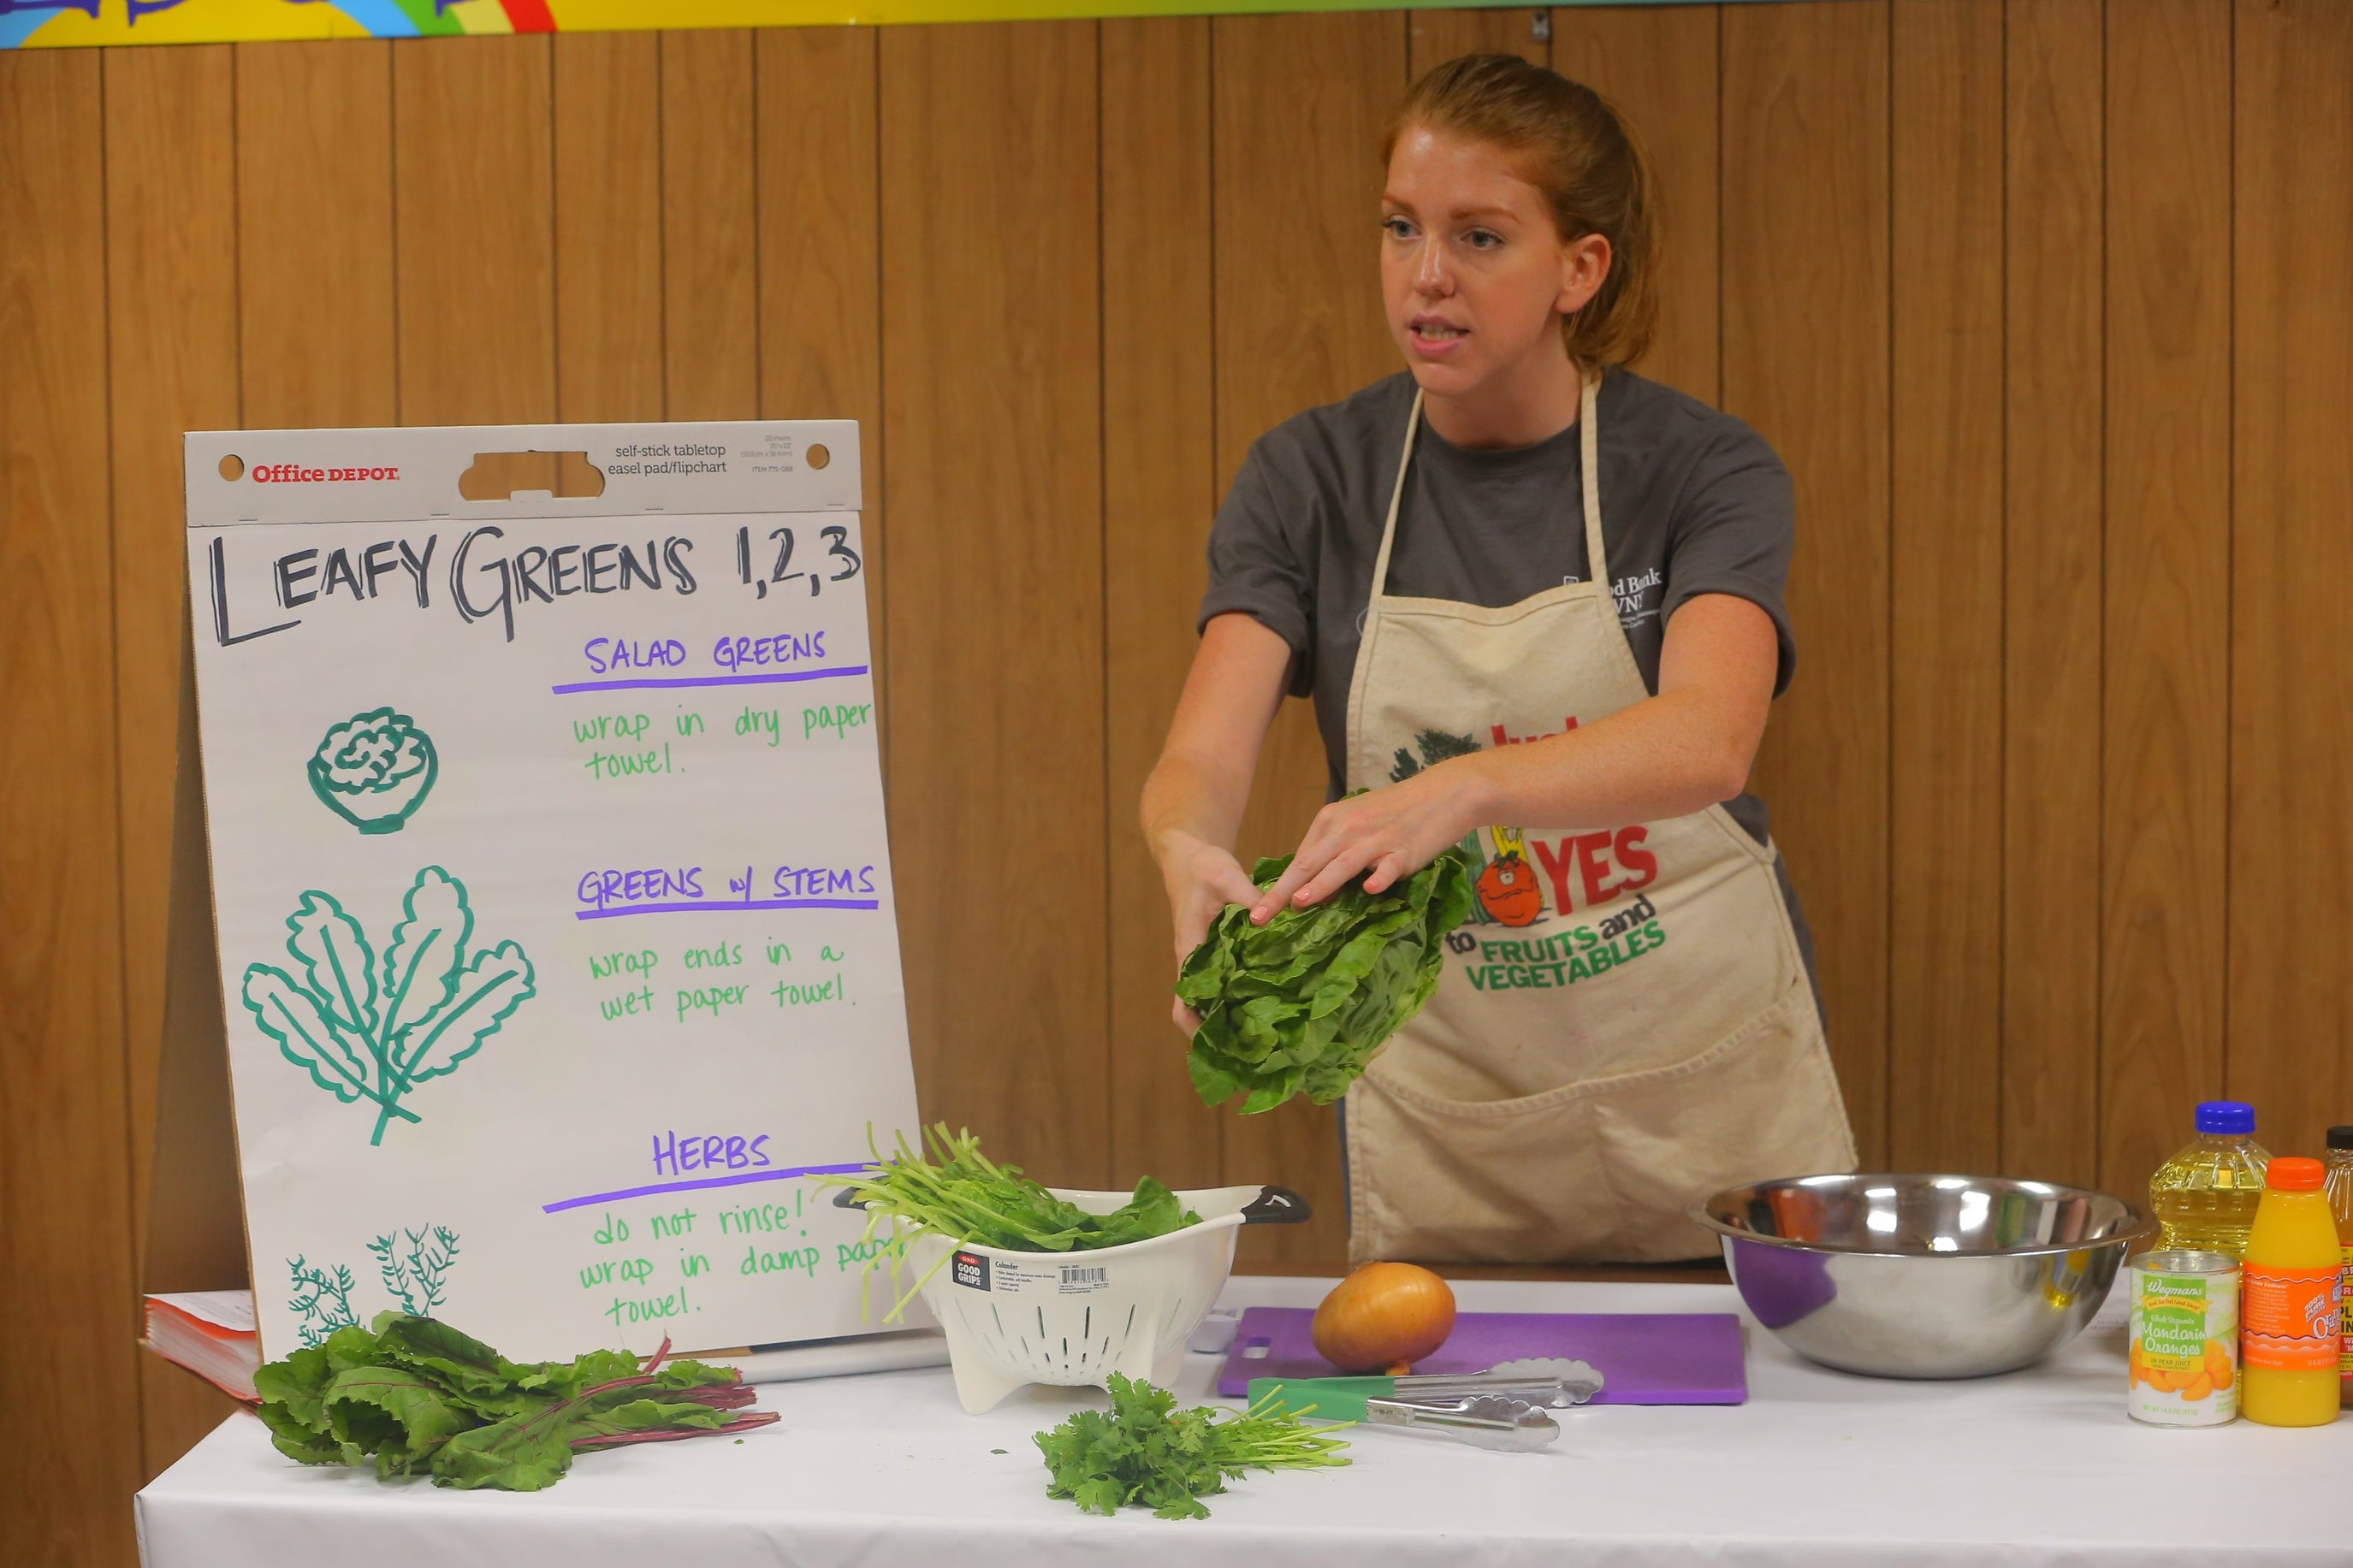 """Cooking at home is one of the most important things people can do to save money and make sure you're eating healthy."" – Elyse Burgher, Just Say Yes to Fruits and Vegetables nutritionist with the Food Bank of WNY, on helping low-income people make the most of their food budgets"